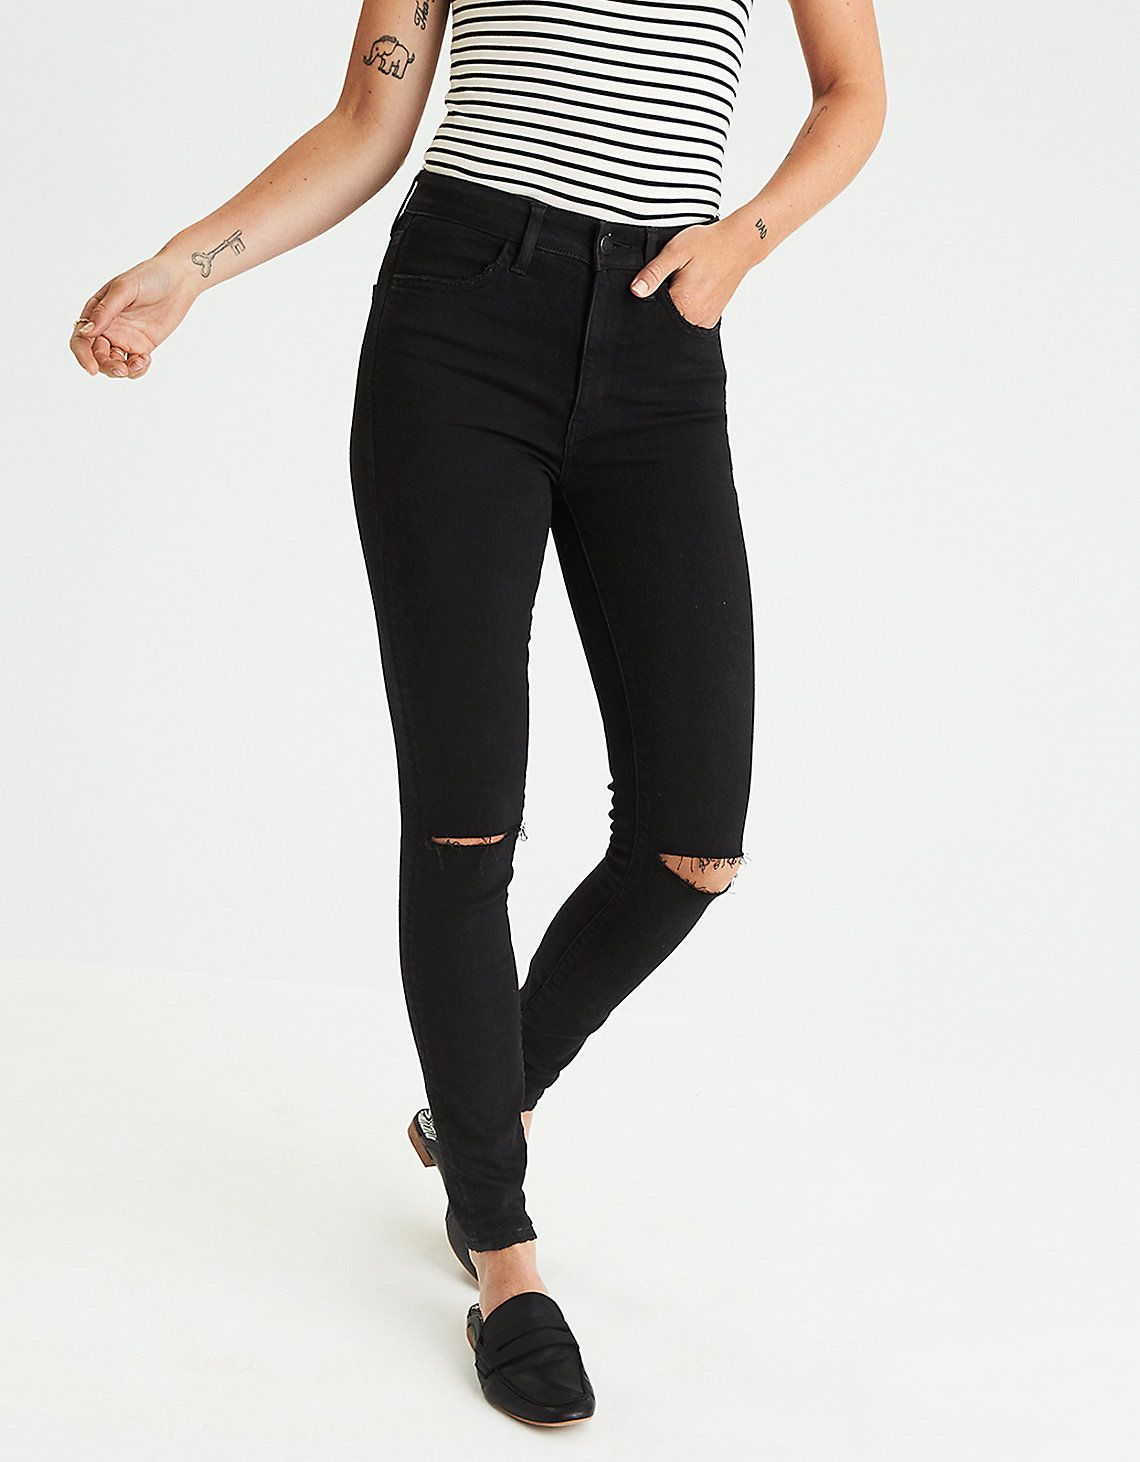 3b8cb39d26f90 AE Super High Rise Jean Legging LONG (black) 8 and try 10 ...